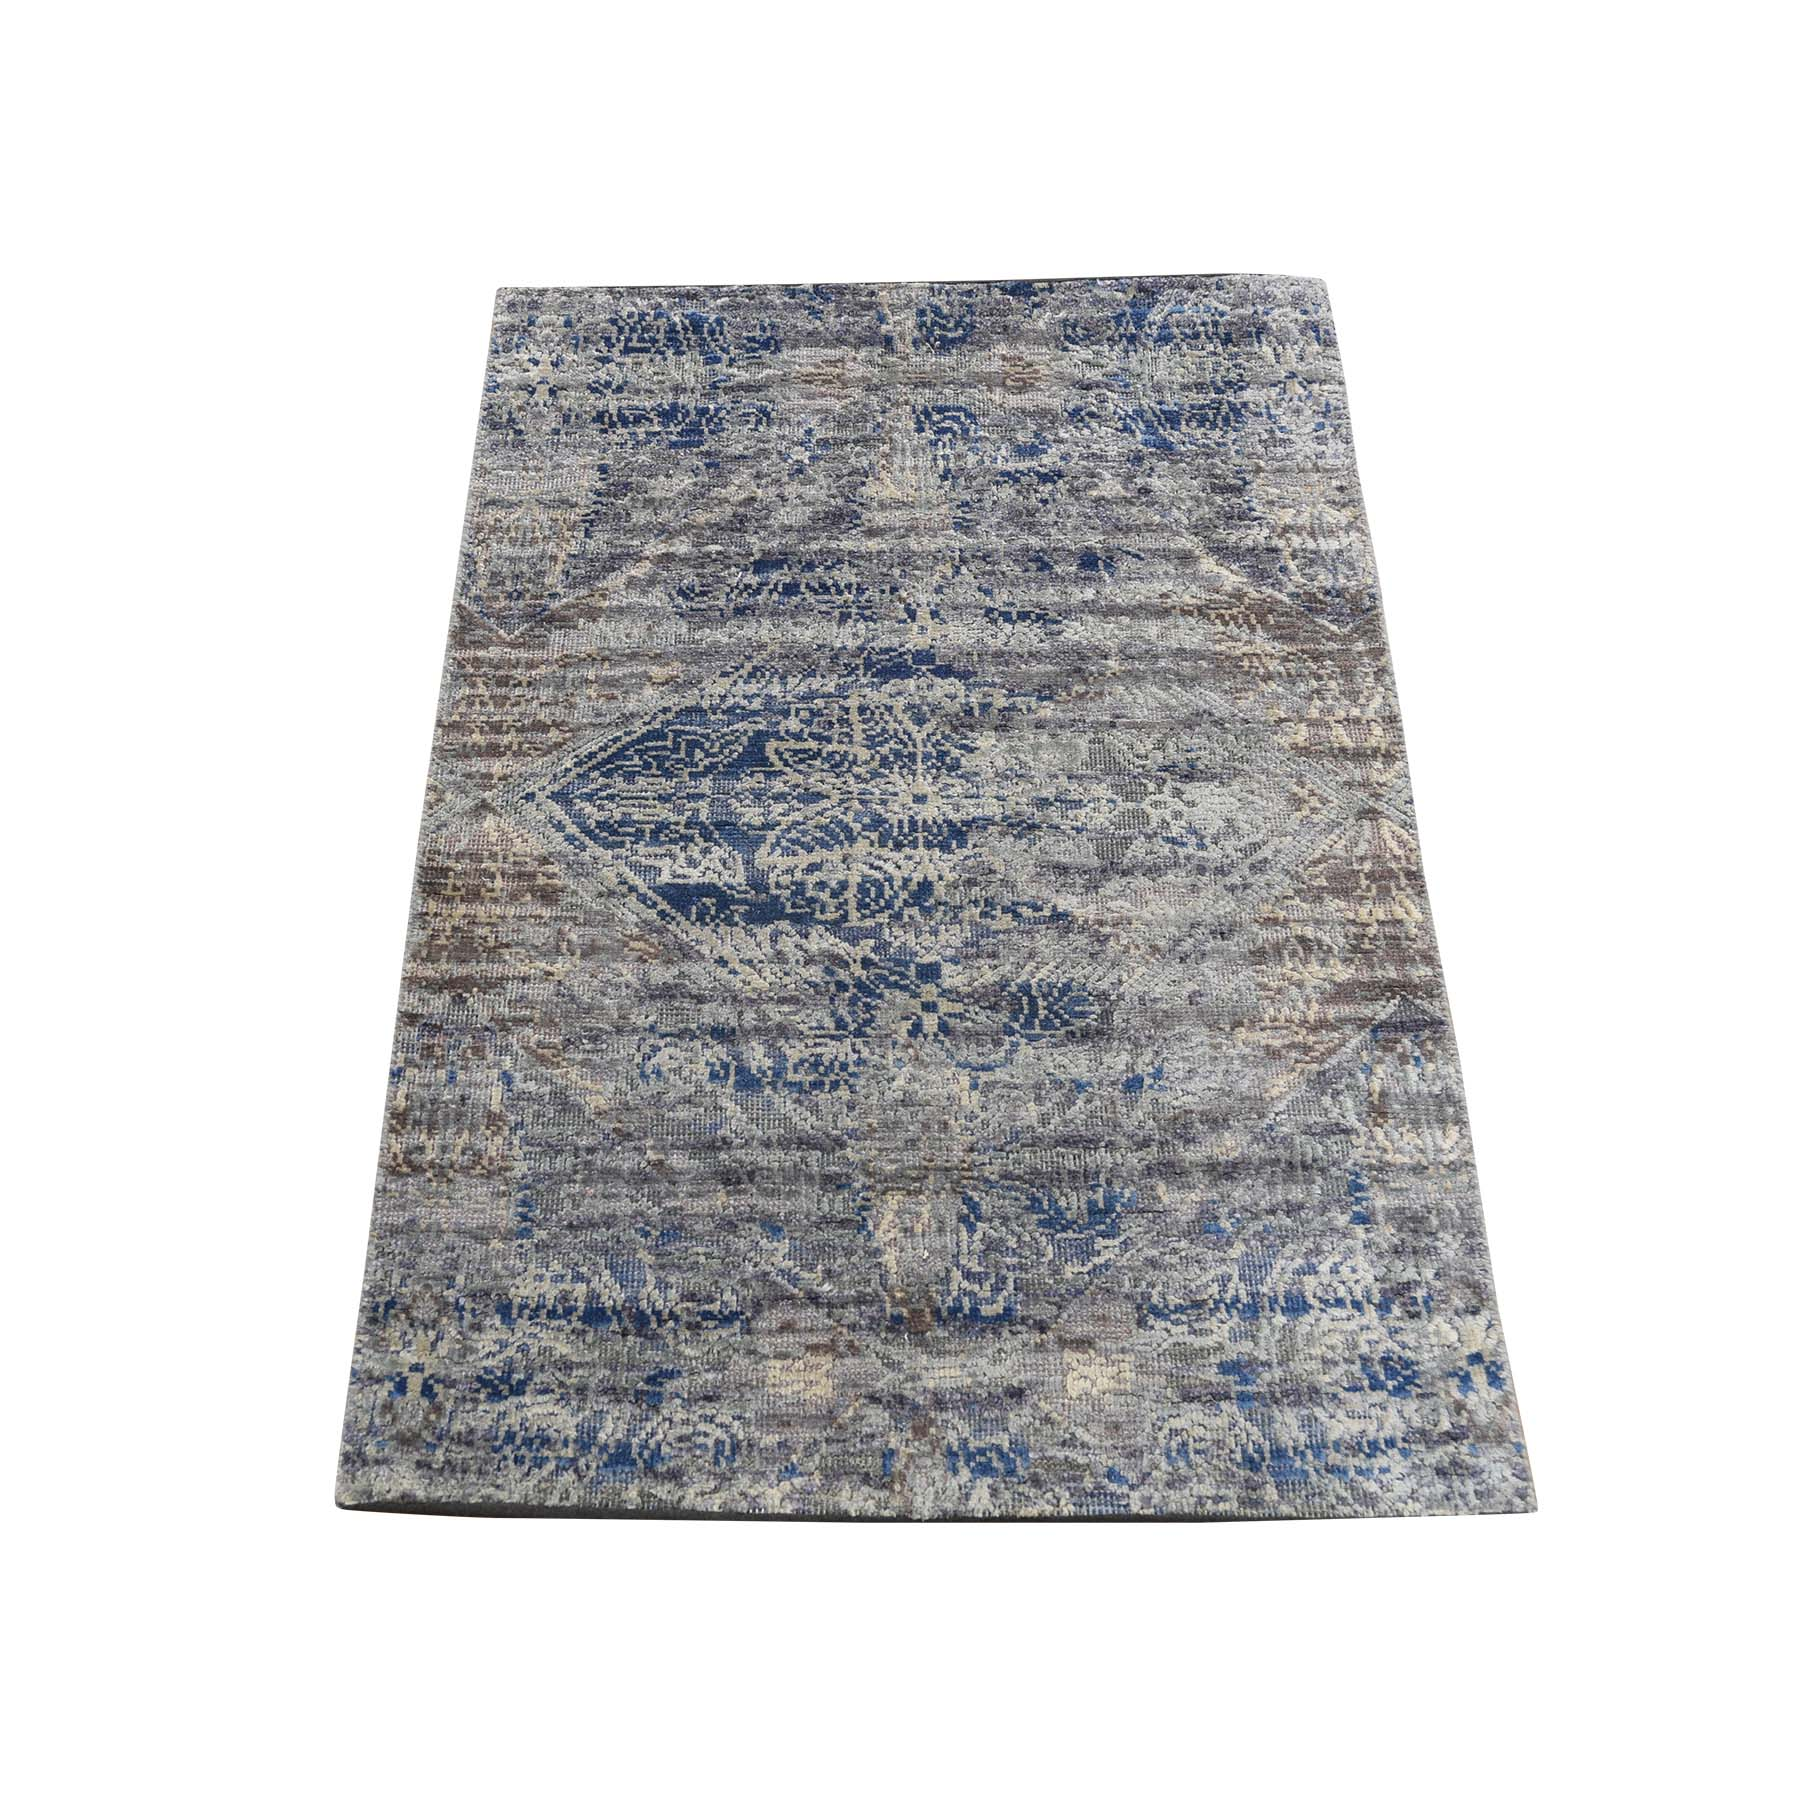 "2'X3'1"" Erased Rossets,Silk With Textured Wool Denim Blue Hand-Knotted Oriental Sample Rug moadd8c8"